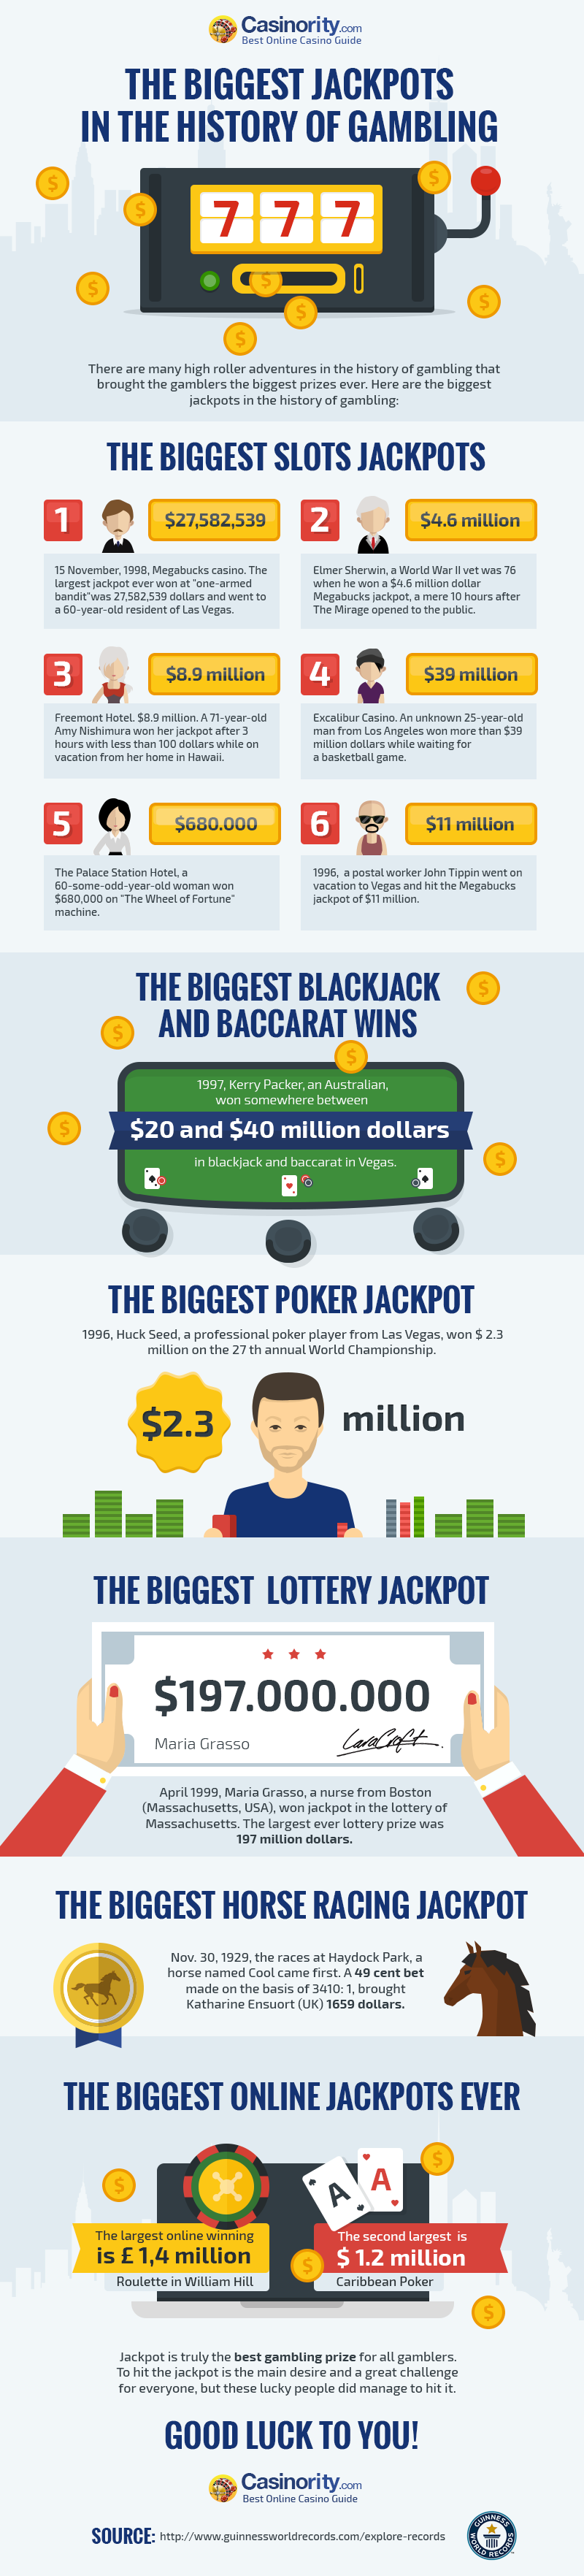 The Biggest Jackpots in the History of Gambling